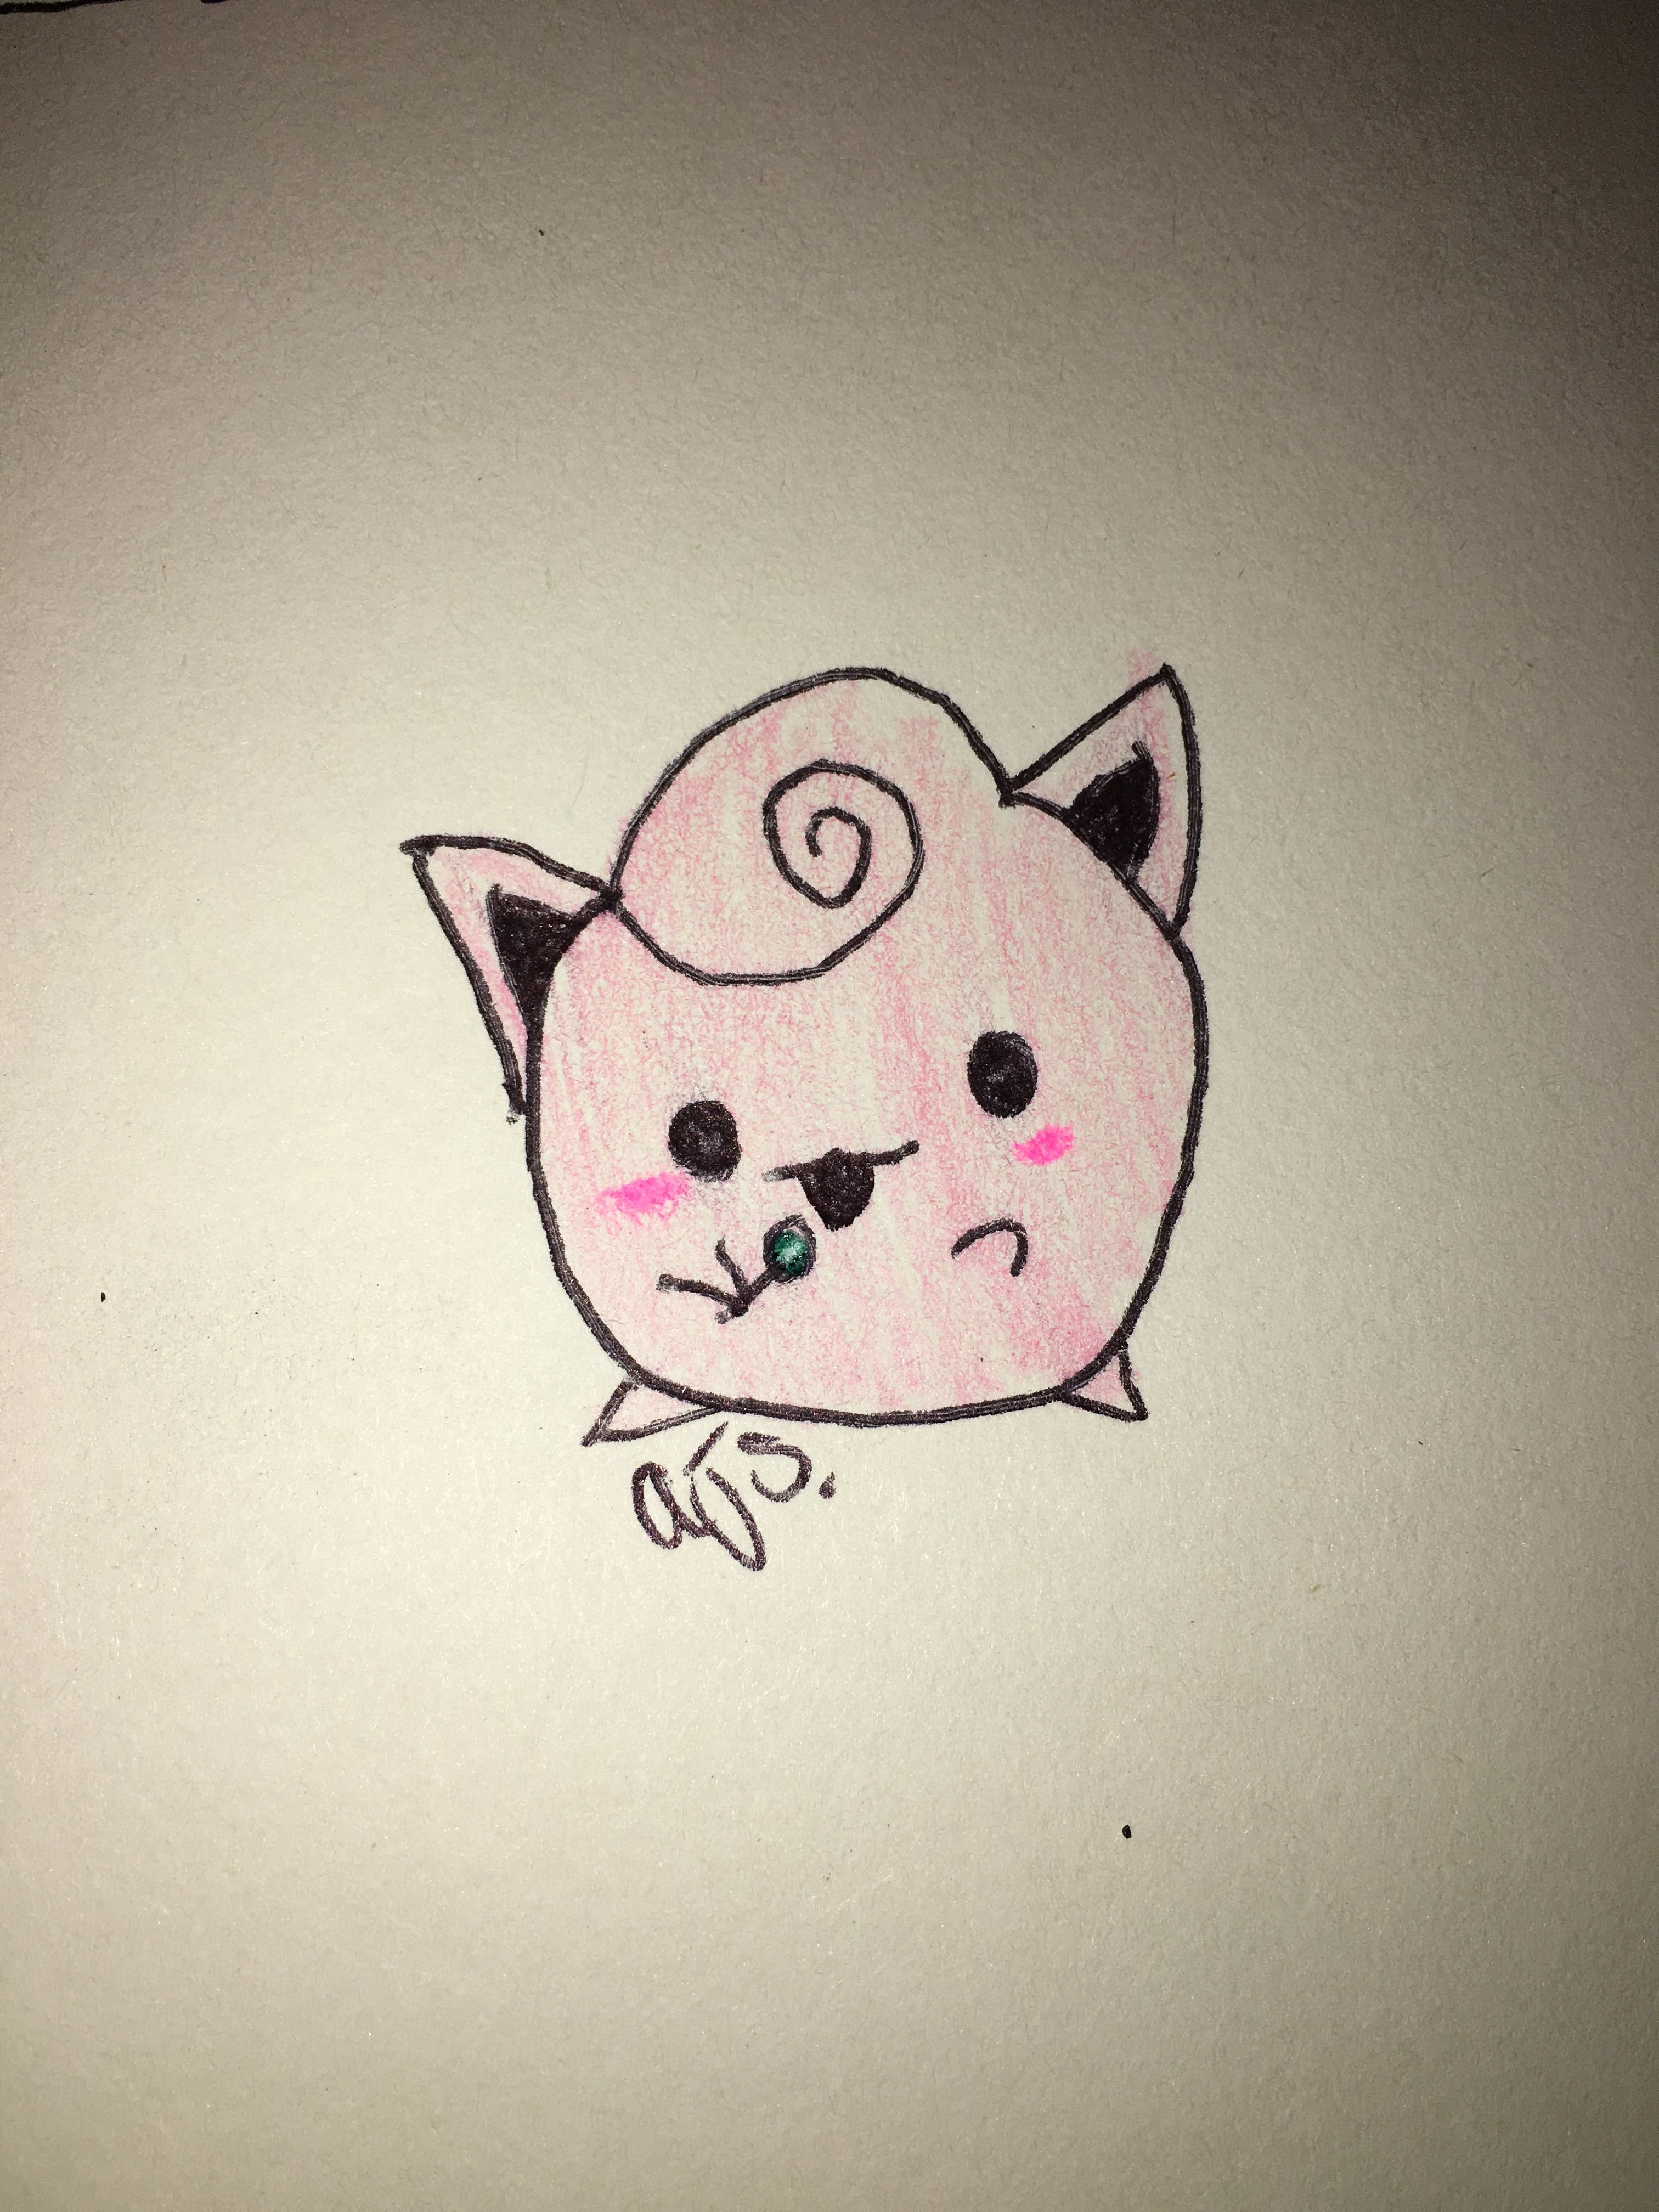 Jigglypuff drawing I did. I know my drawing sucks rate it 1-10